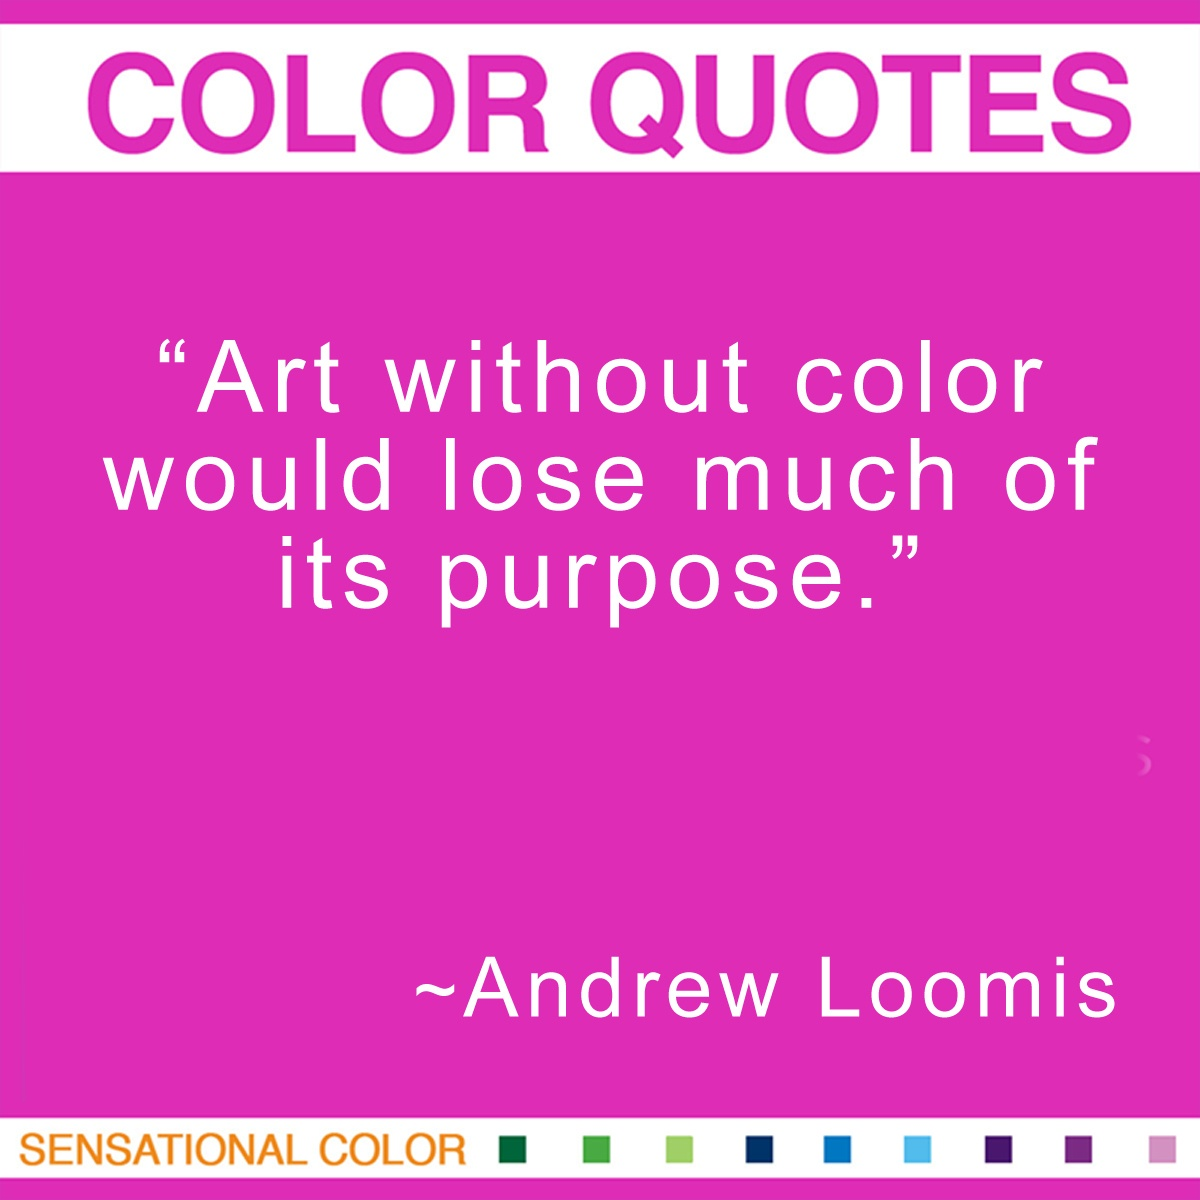 """""""Art without color would lose much of its purpose."""" - Andrew Loomis"""